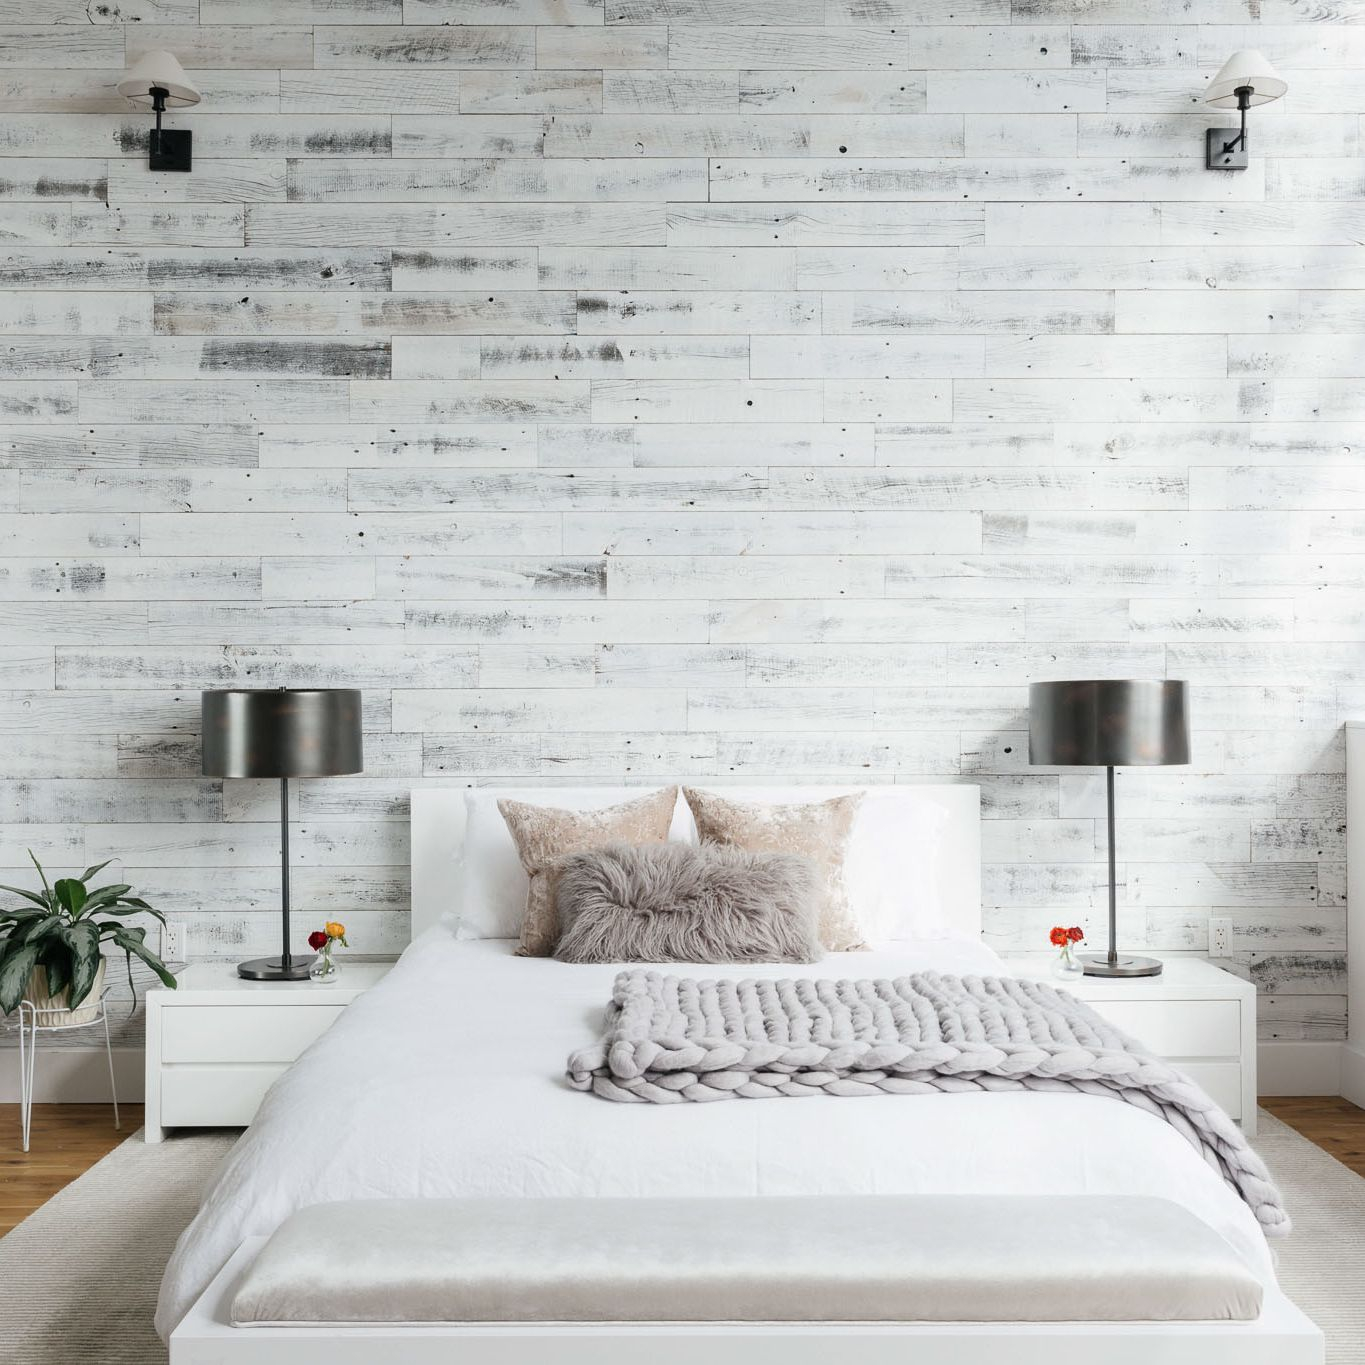 4 Modern Rustic Bedroom Decorating Ideas